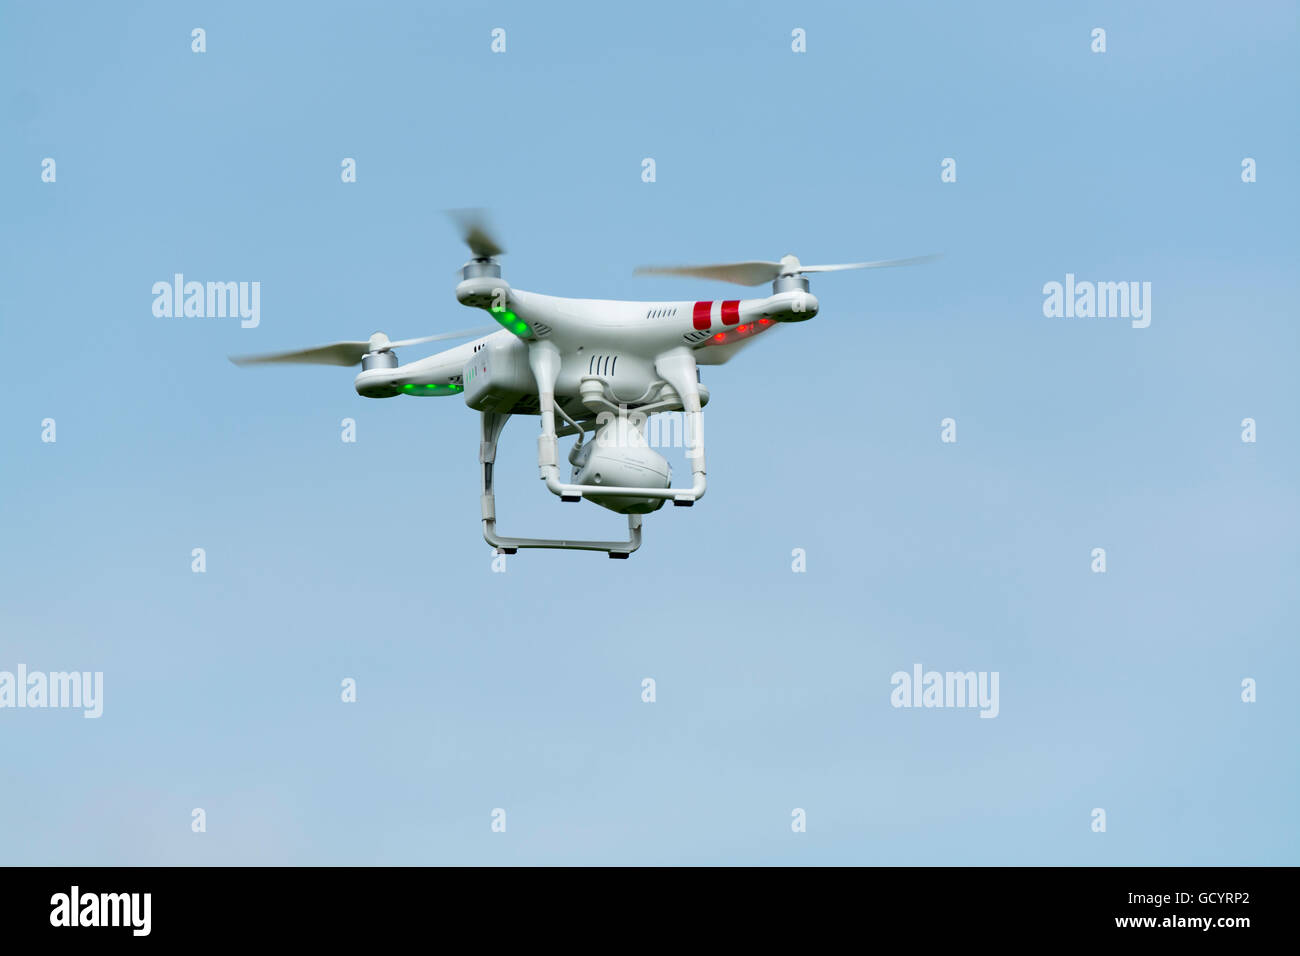 Camera drone in action in countryside, UK. - Stock Image